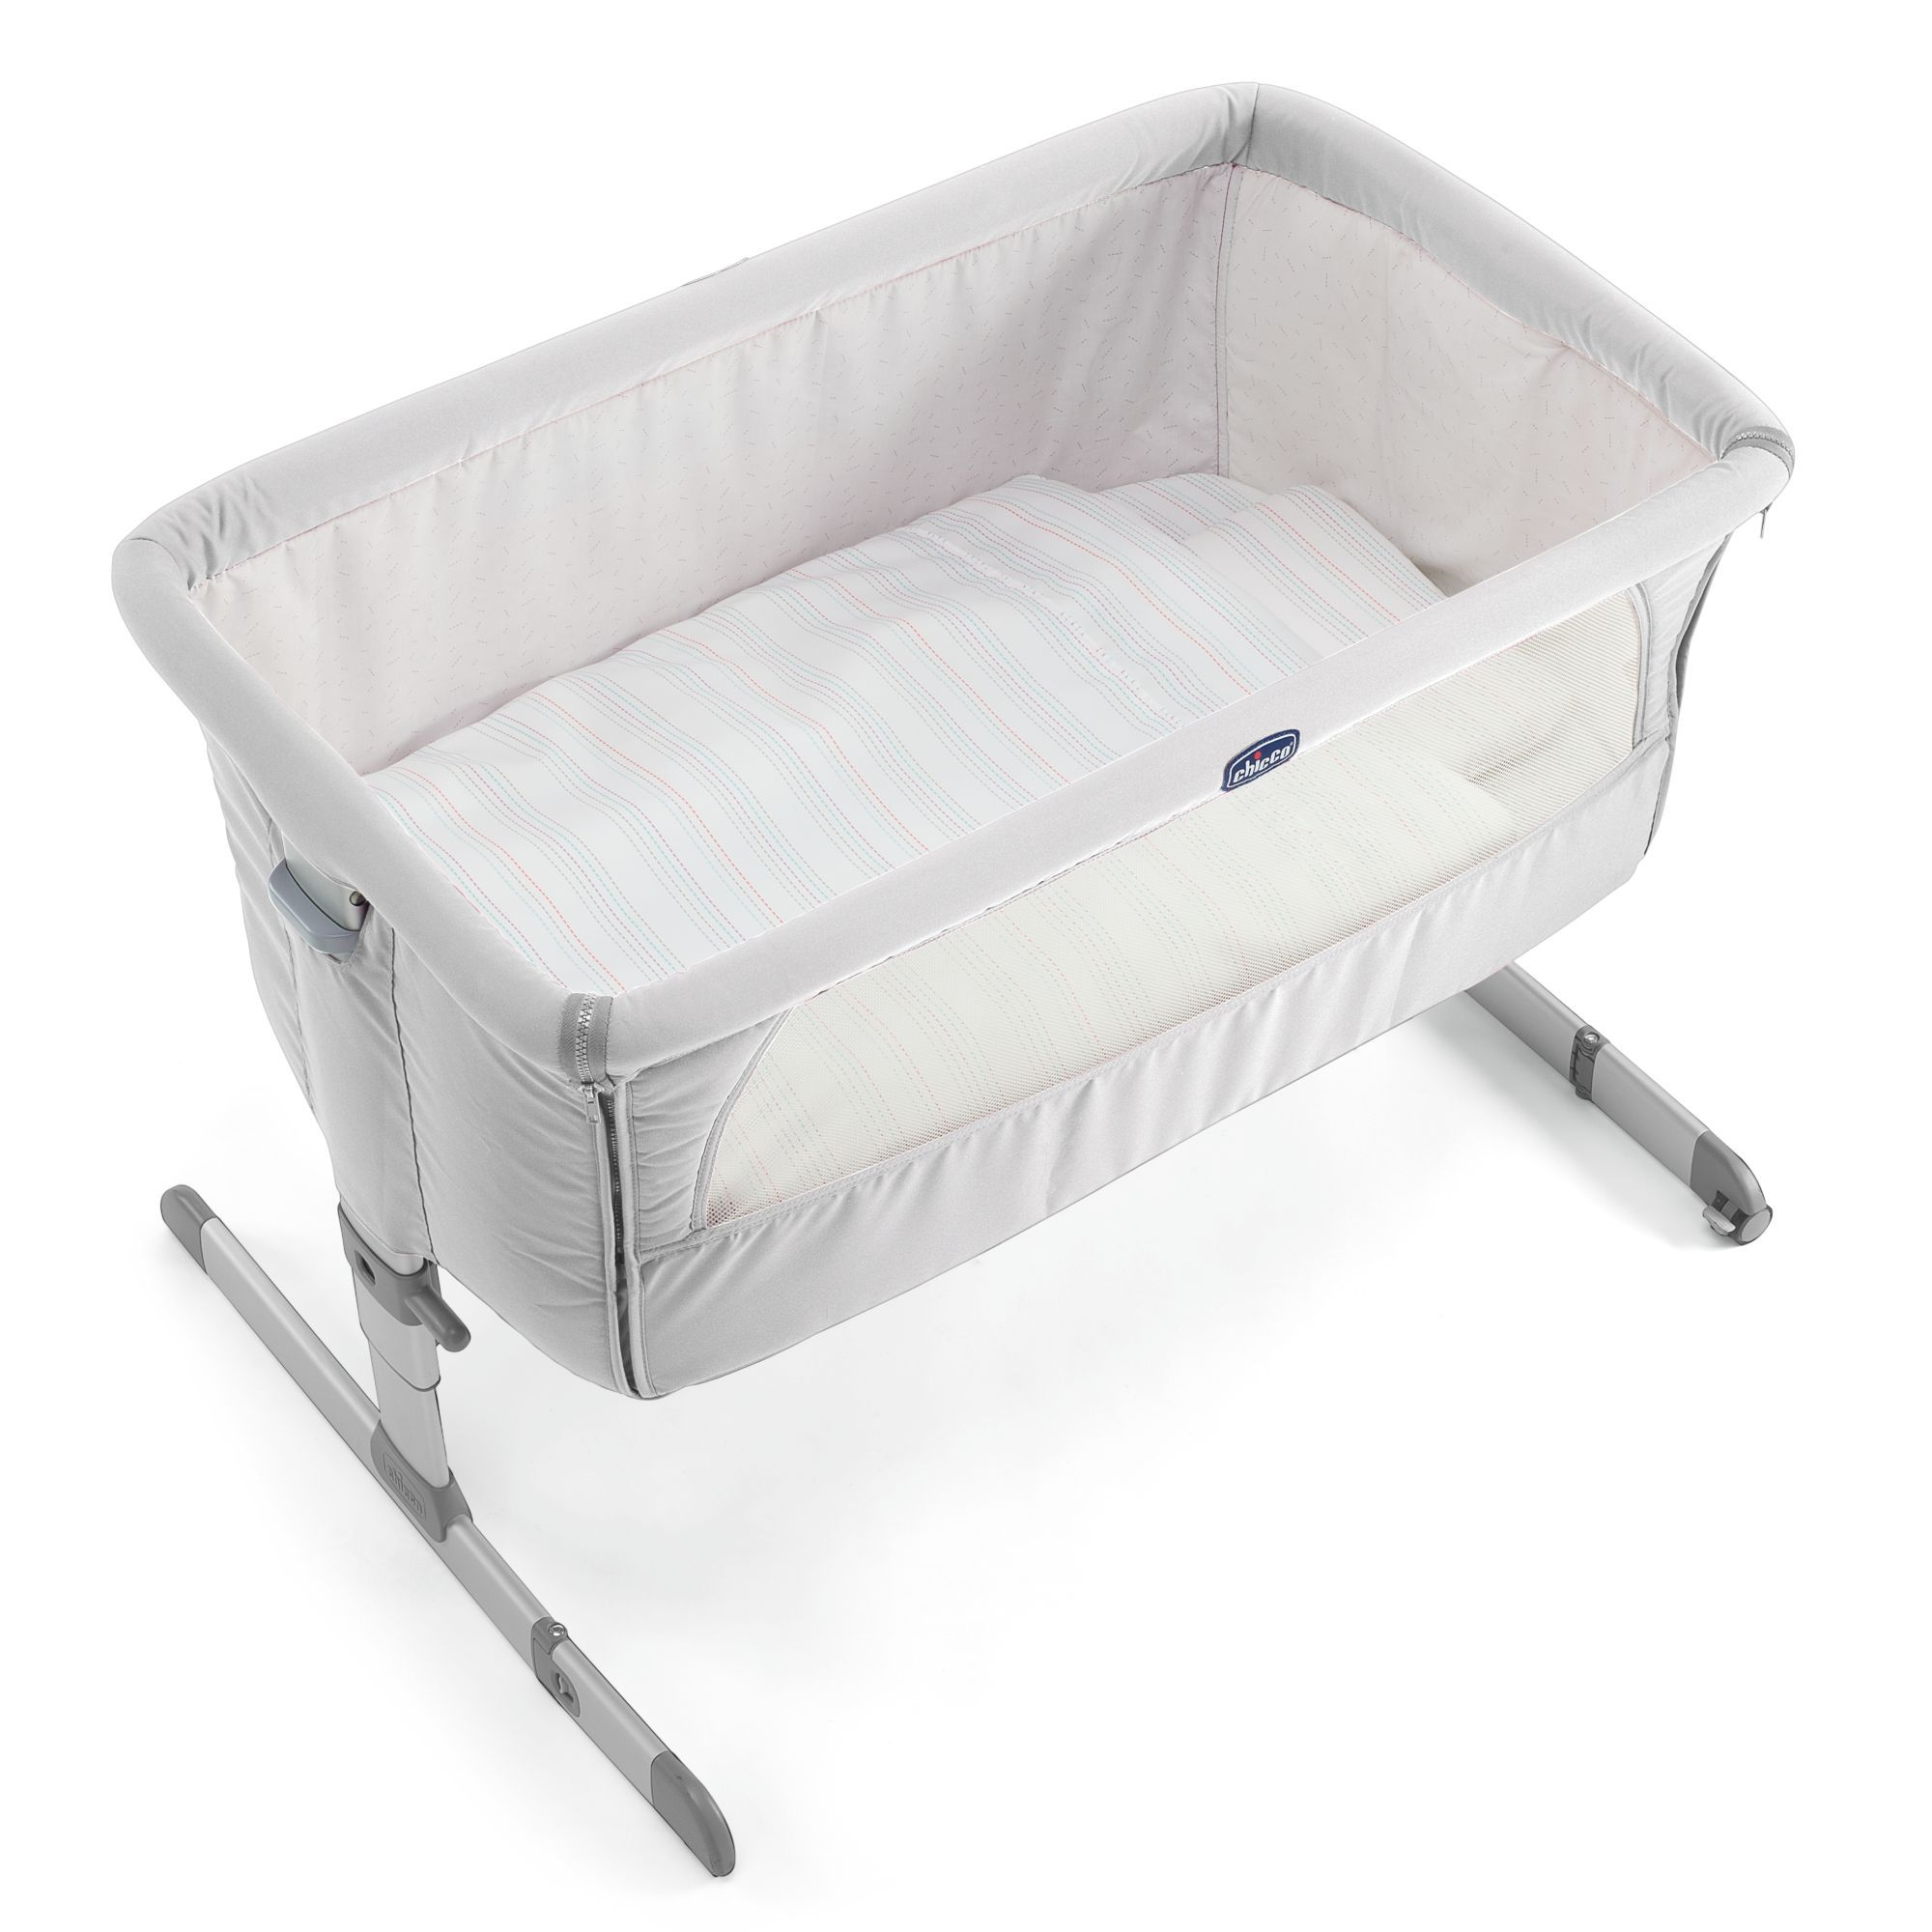 Special enclosed crib for premature babies - Chicco Next 2 Me Bedside Crib Silver